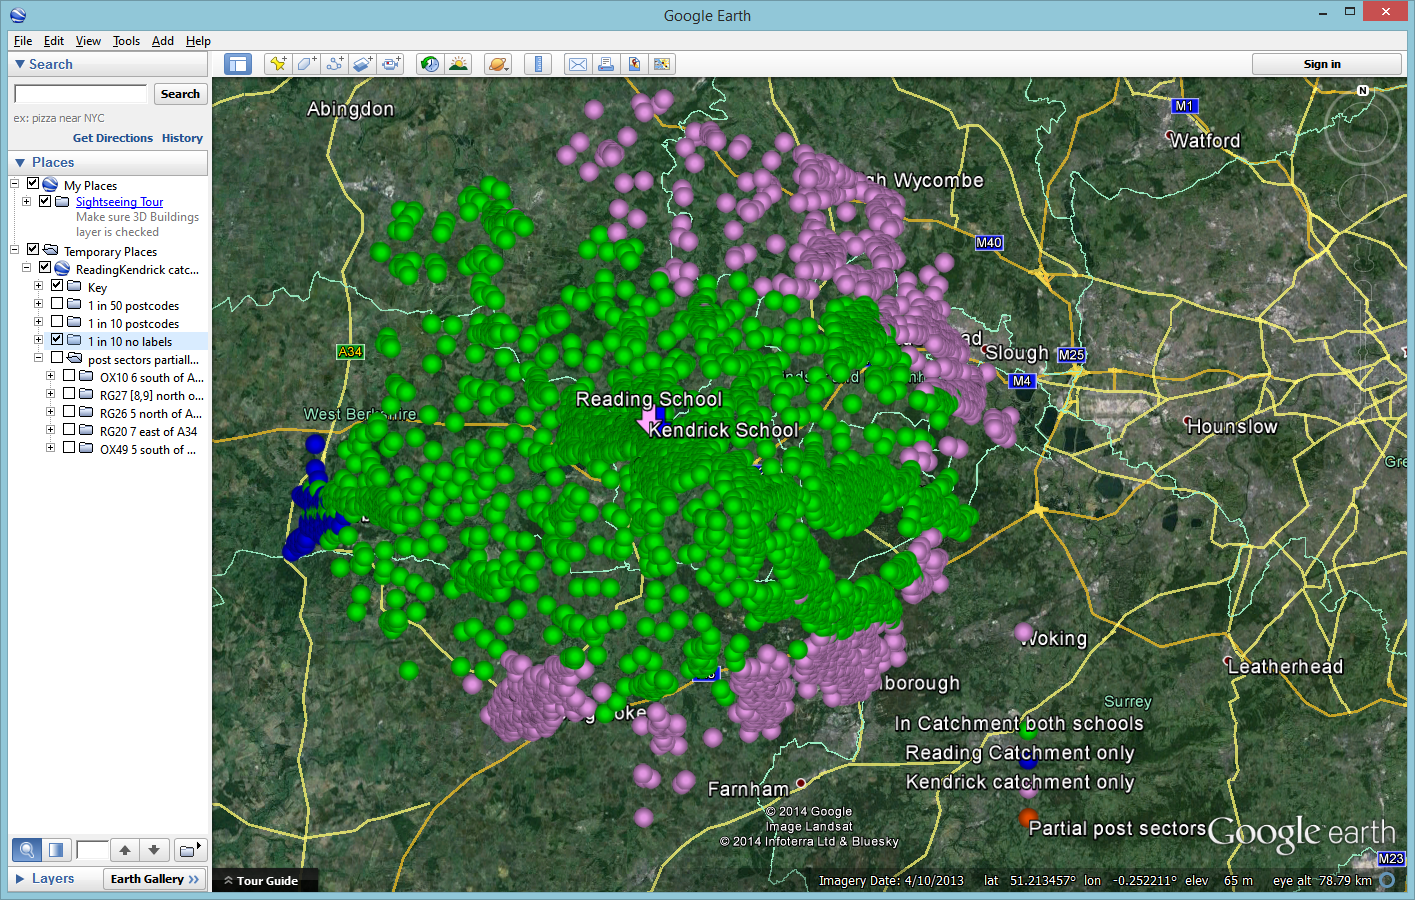 R&K catchments in Google Earth